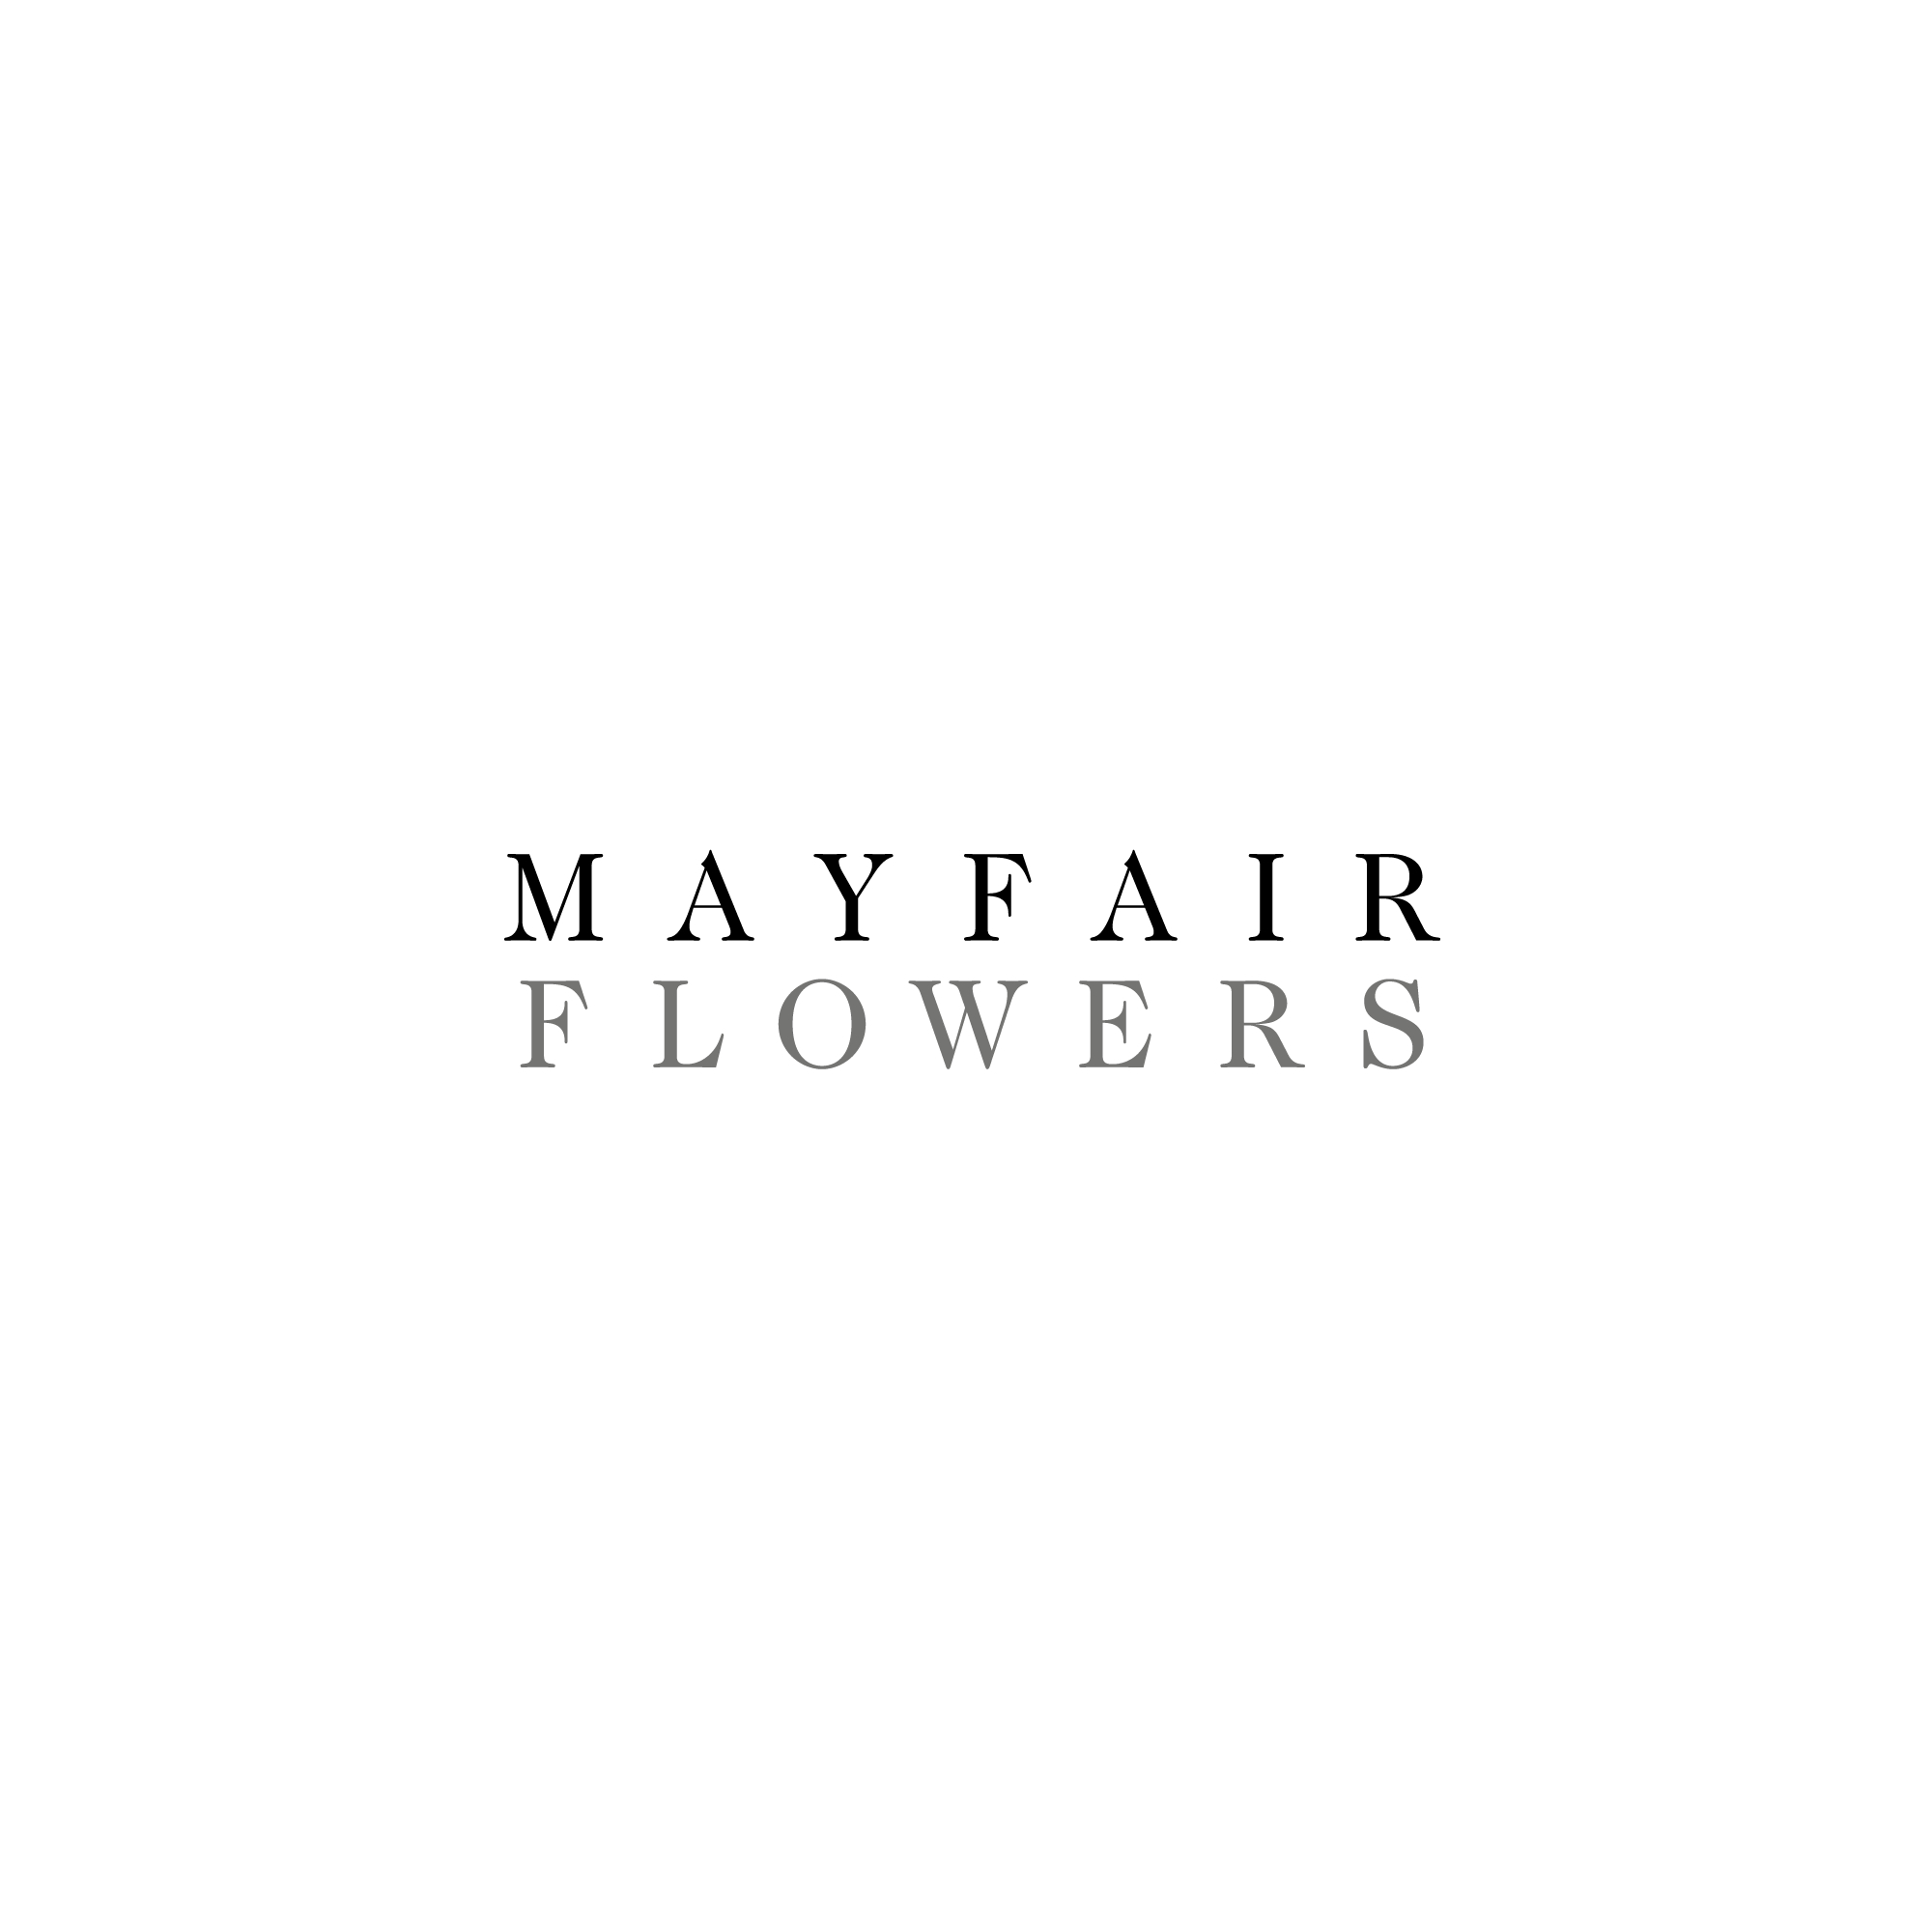 Mayfair Flowers|Identity CI, Graphics and Sign|グラフィックデザイン|東京都世田谷区